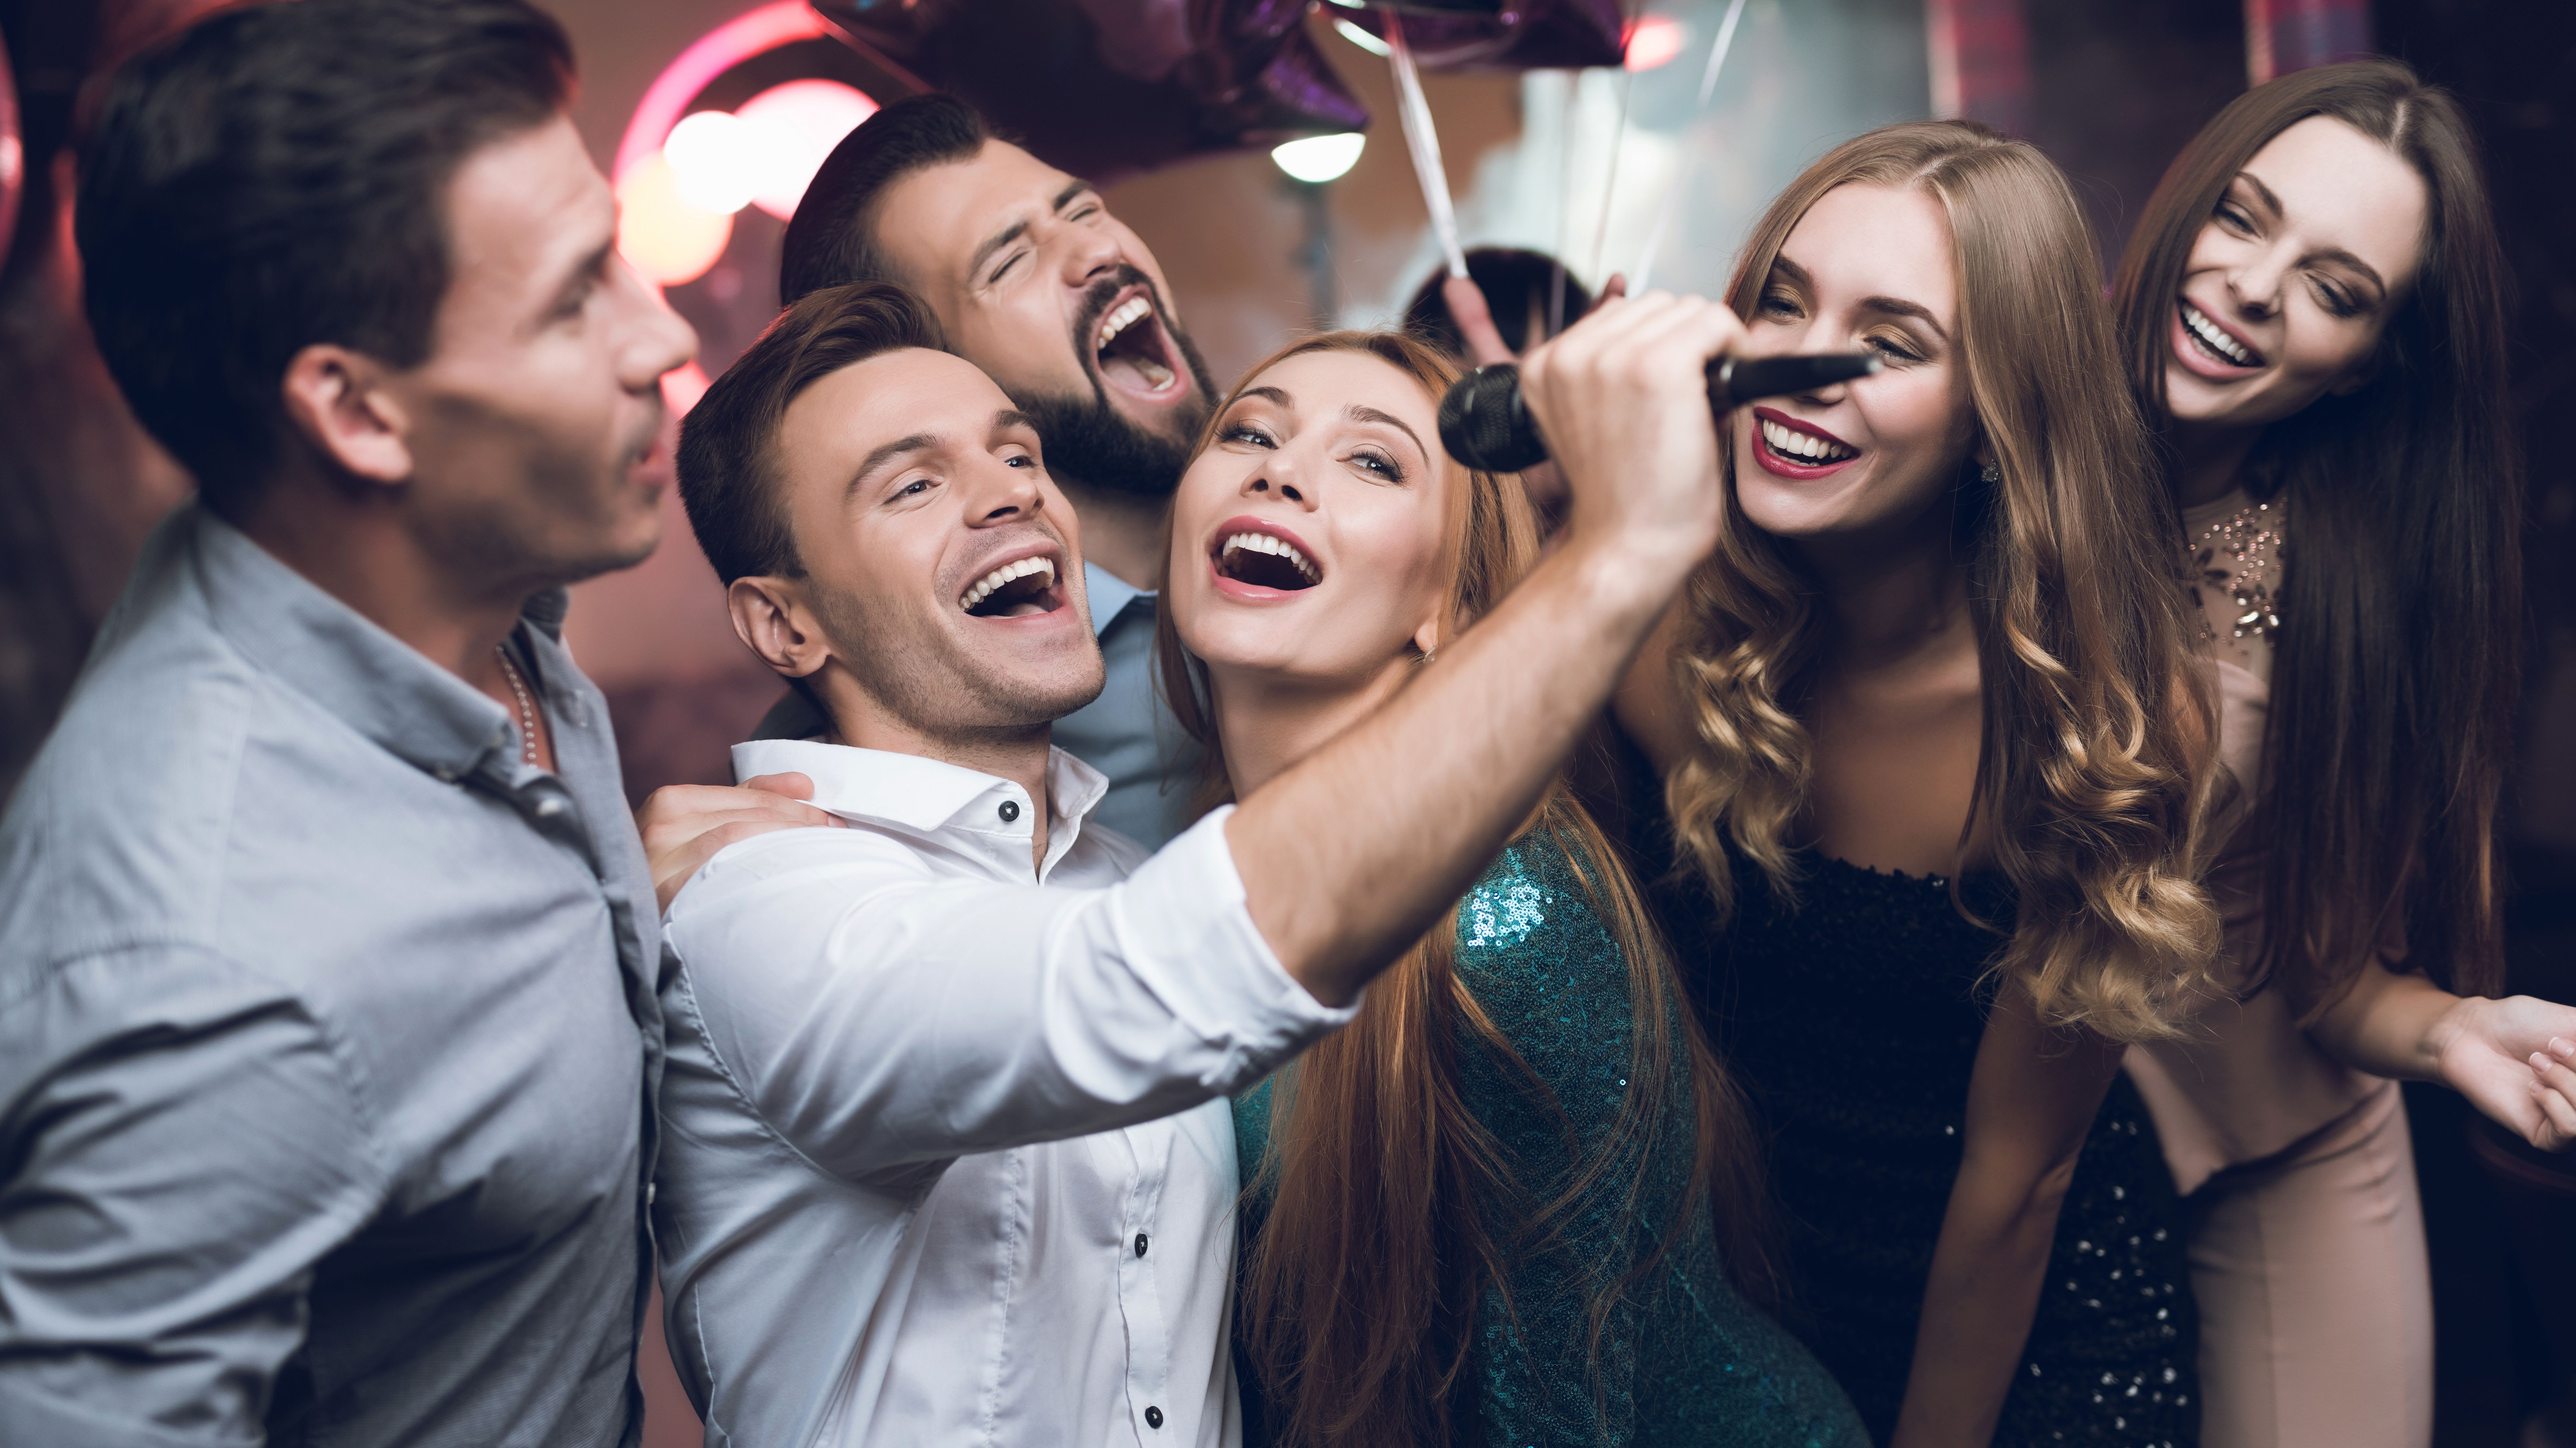 30 Solidly Good Karaoke Songs for Your Next Work Party | Fairygodboss